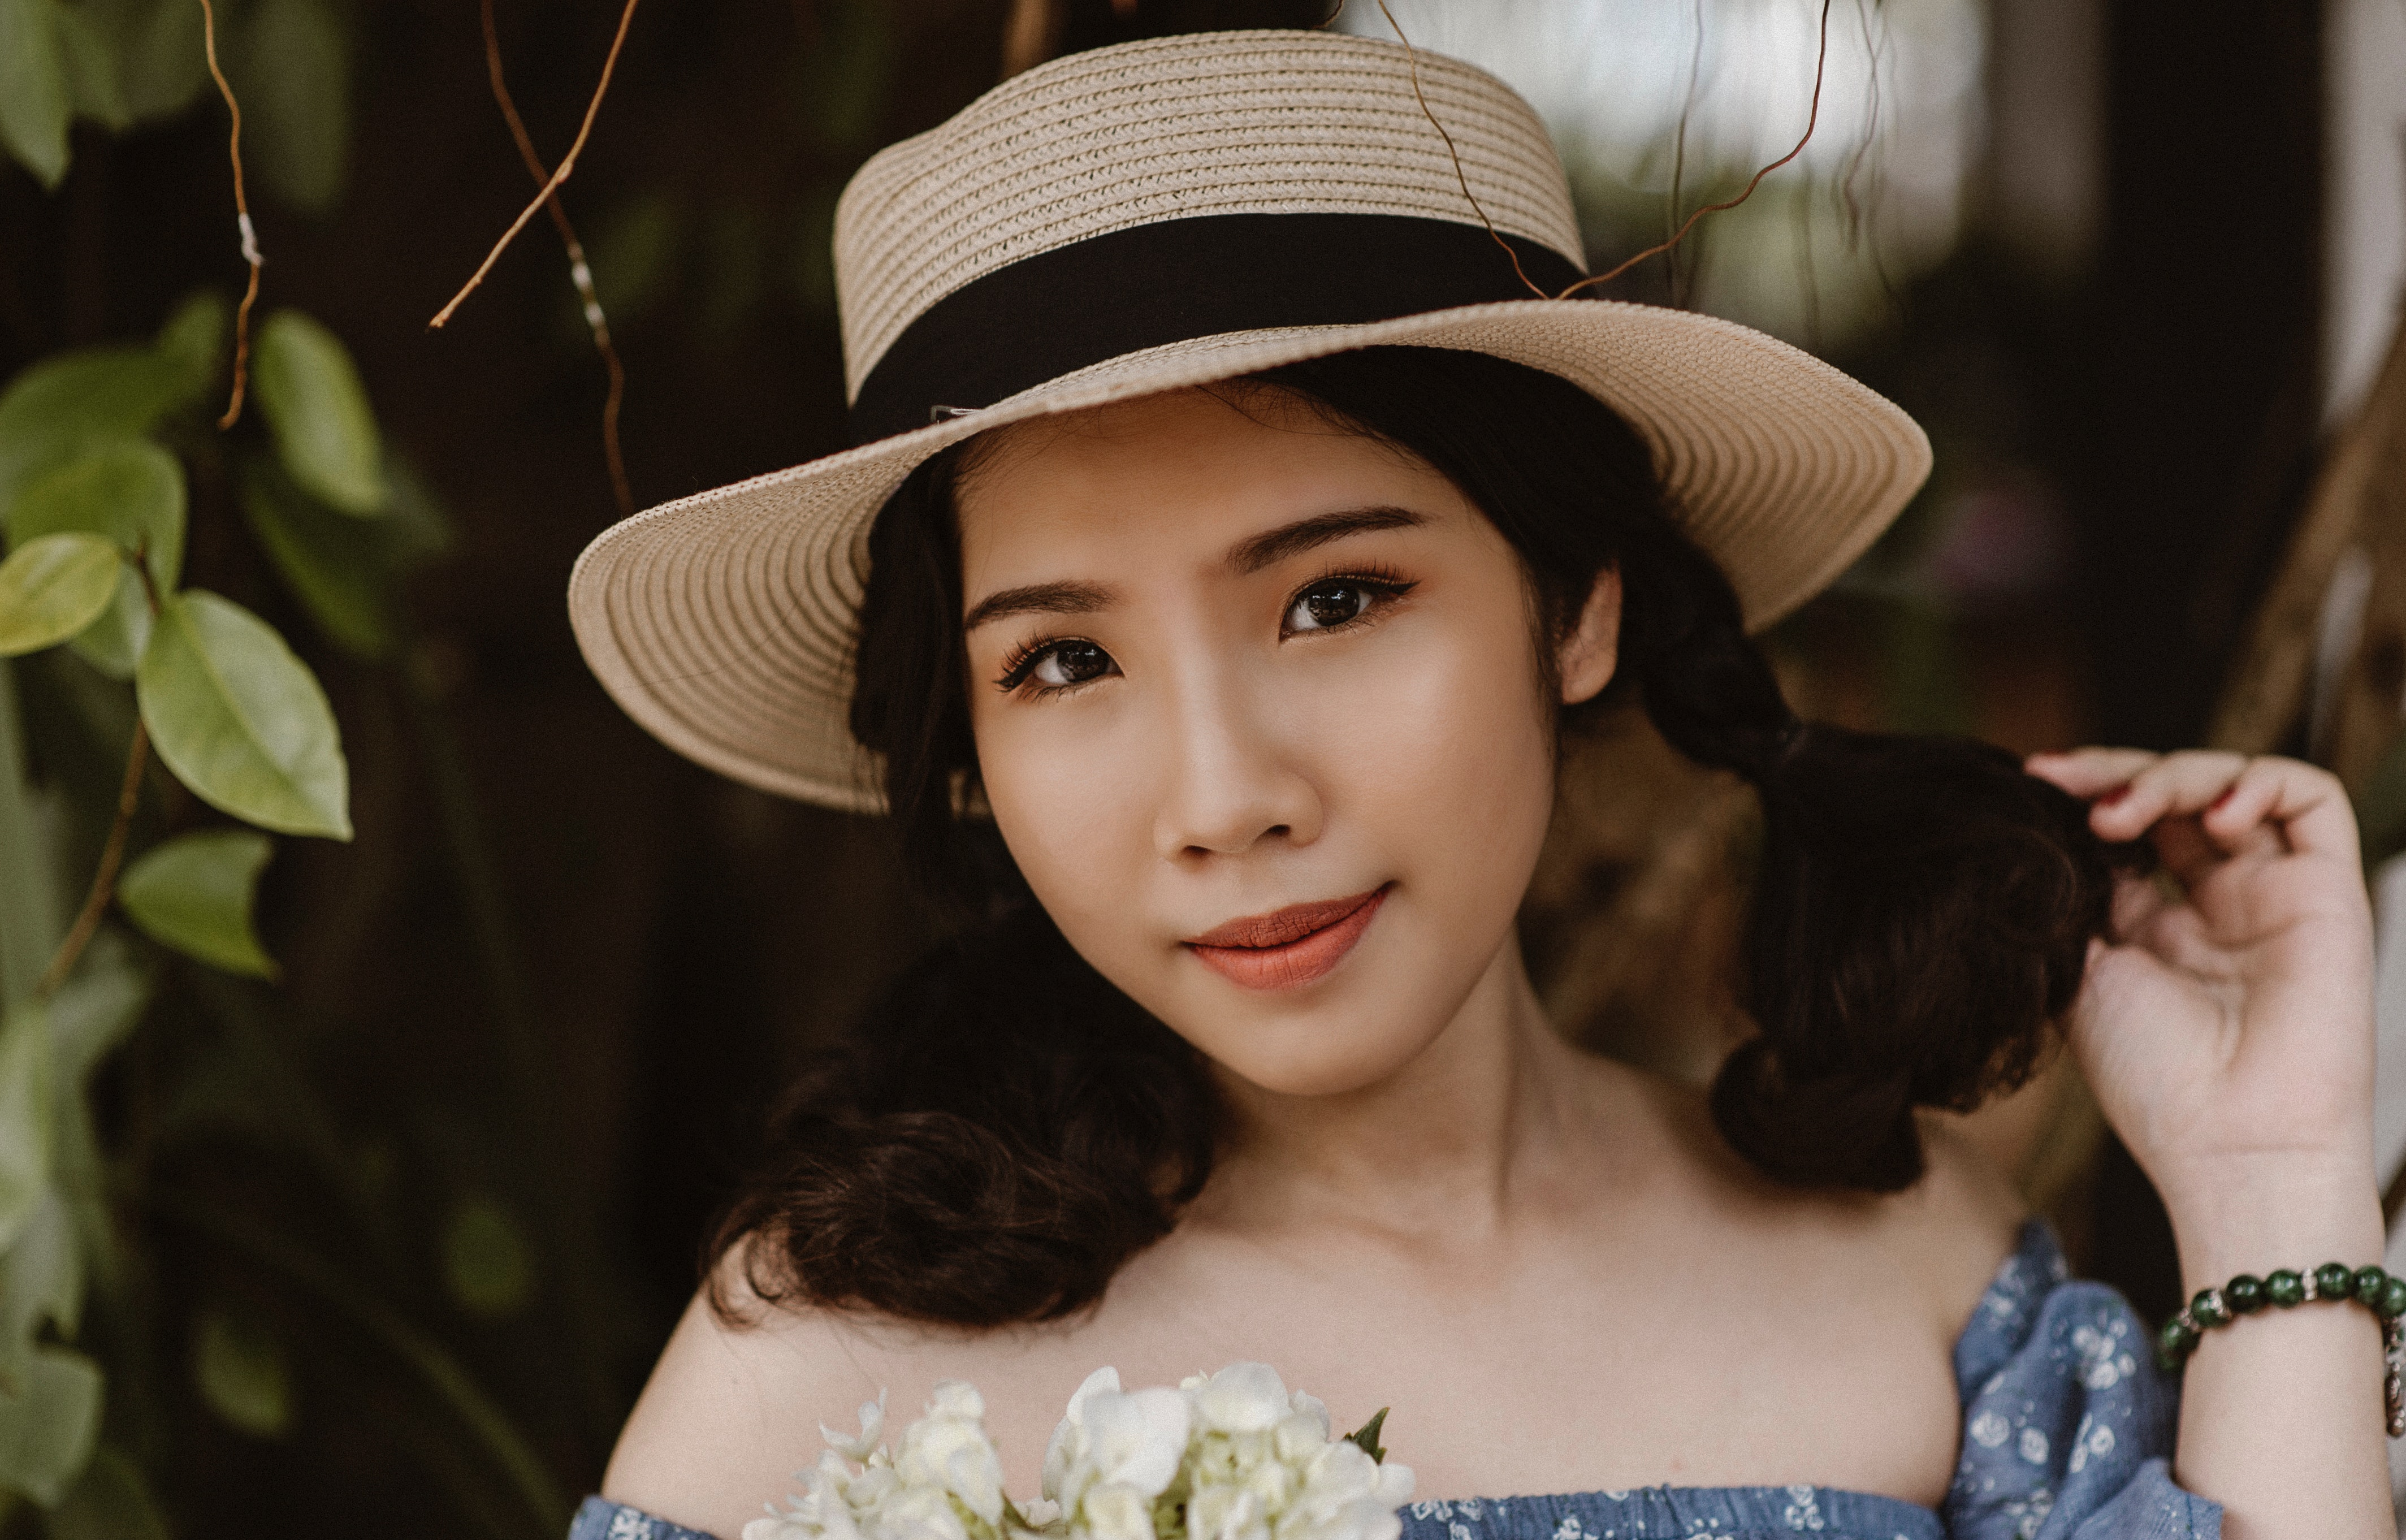 Focus Photography of Woman in Brown Sunhat Near Vine Plant, Hat, Young, Woman, Wear, HQ Photo